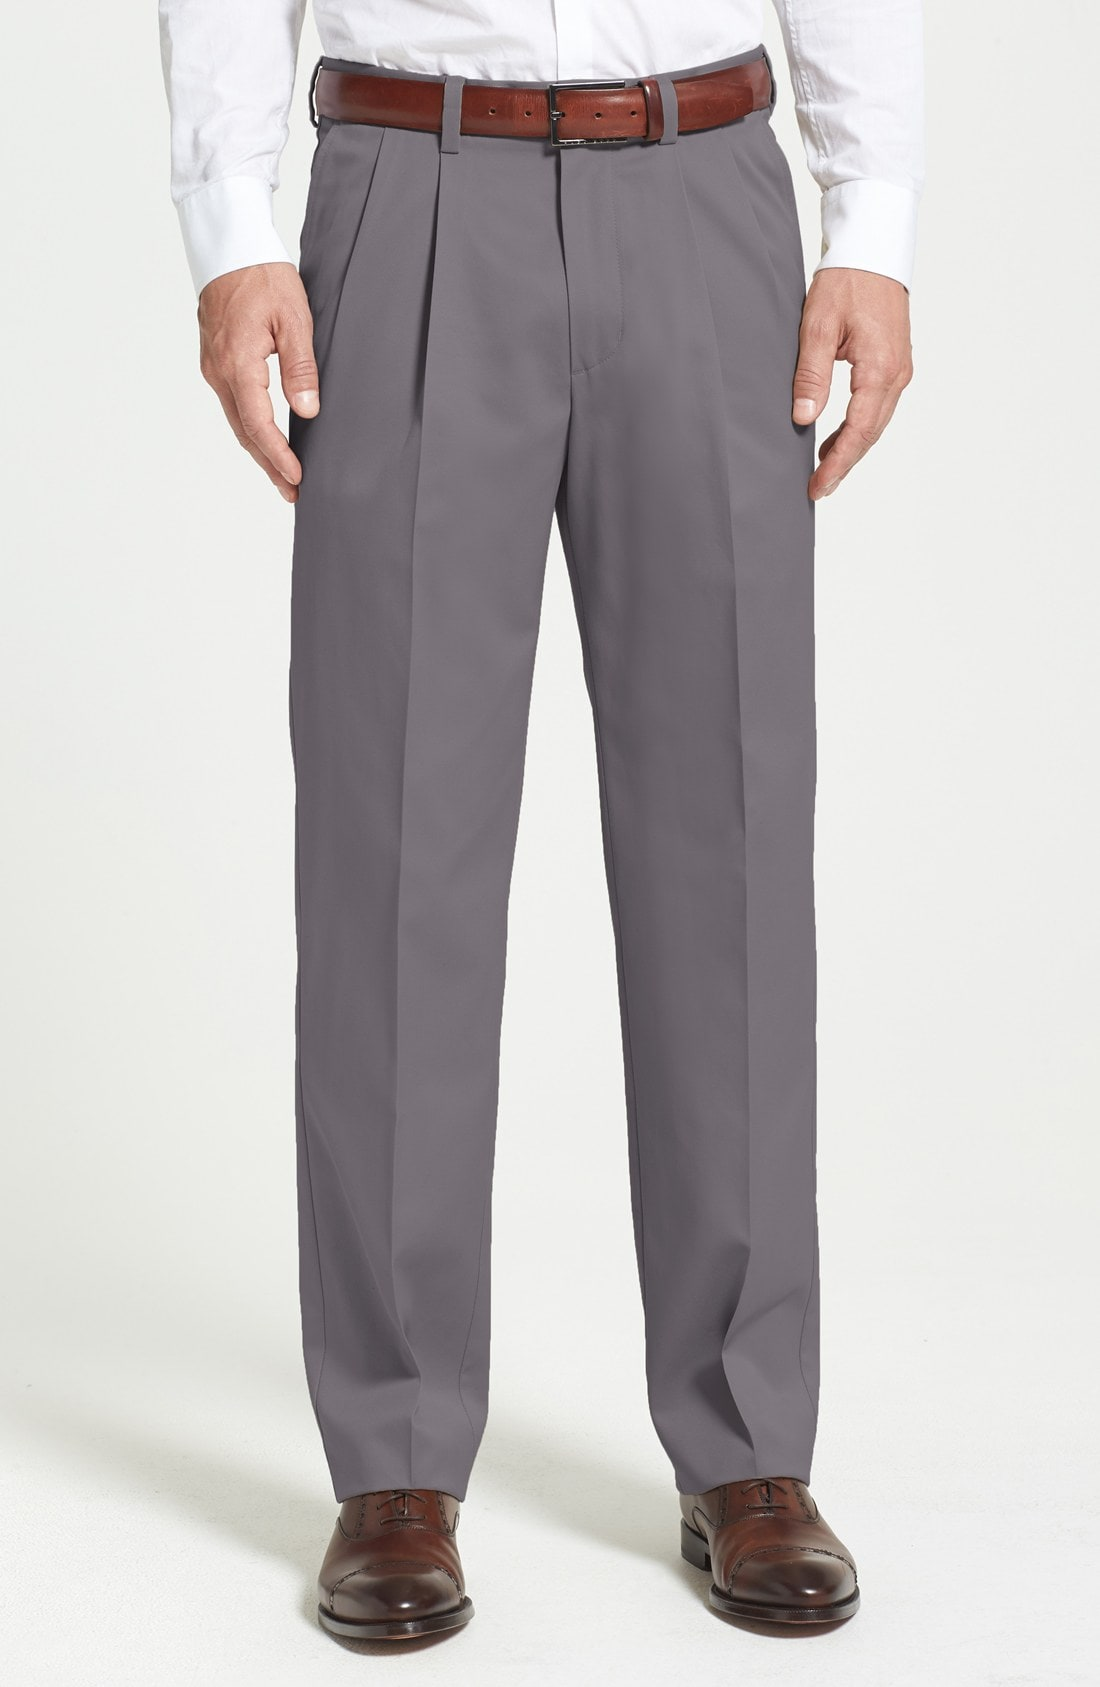 Nordstrom Men's Shop 'Classic' Smartcare Relaxed Fit Double Pleated Cotton Pants (Online Only)